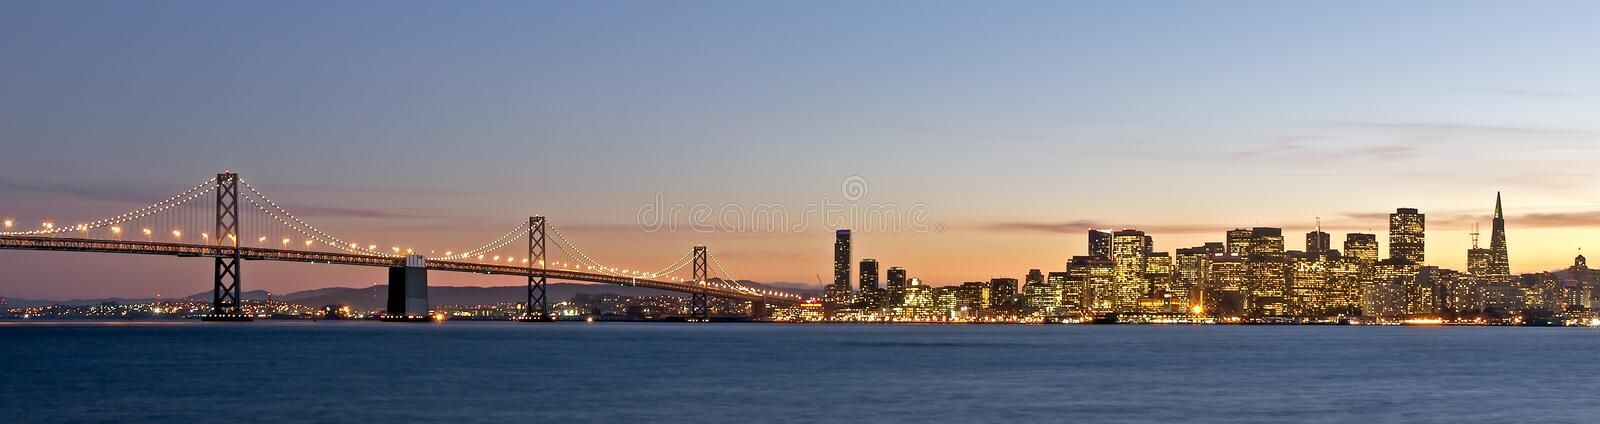 Skyline de San Francisco com a ponte do louro no por do sol fotos de stock royalty free